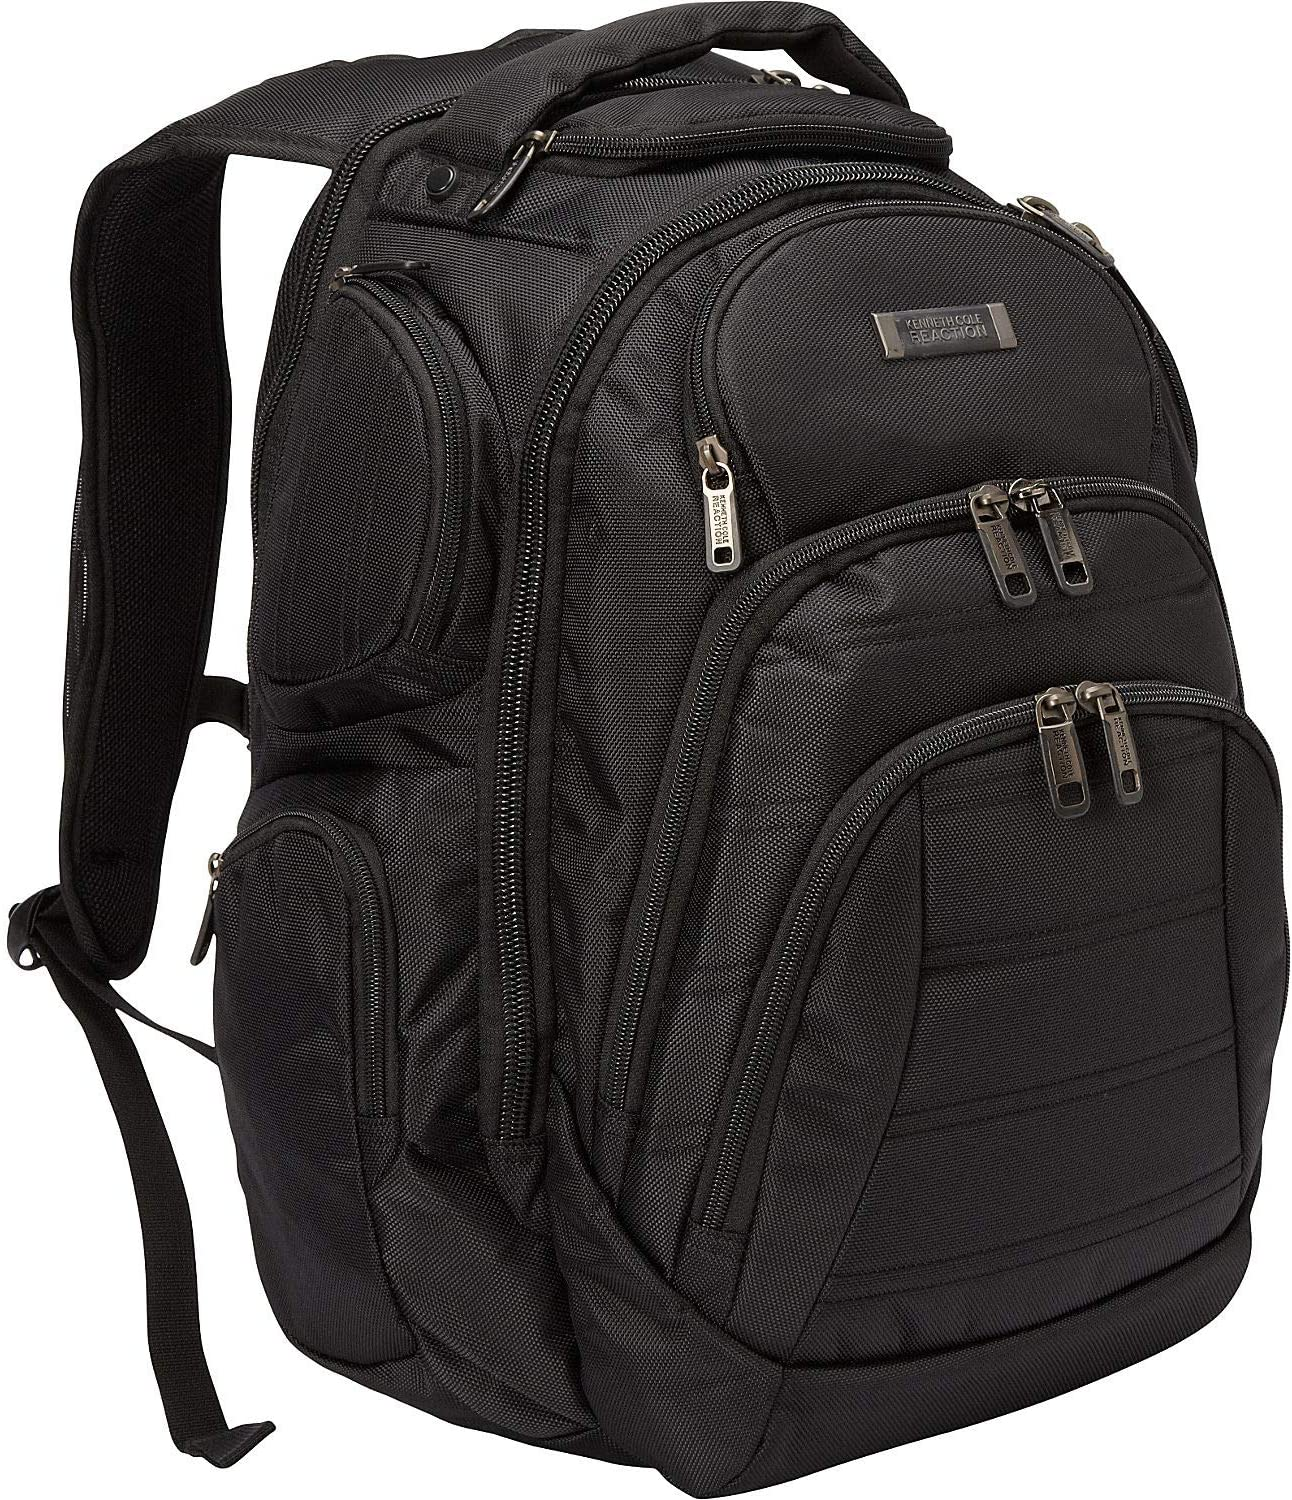 "Kenneth Cole Reaction Pack-of-All-Trades' Multi-Pocket 17.0"" Laptop & Tablet Business Travel Backpack, Black, One Size"